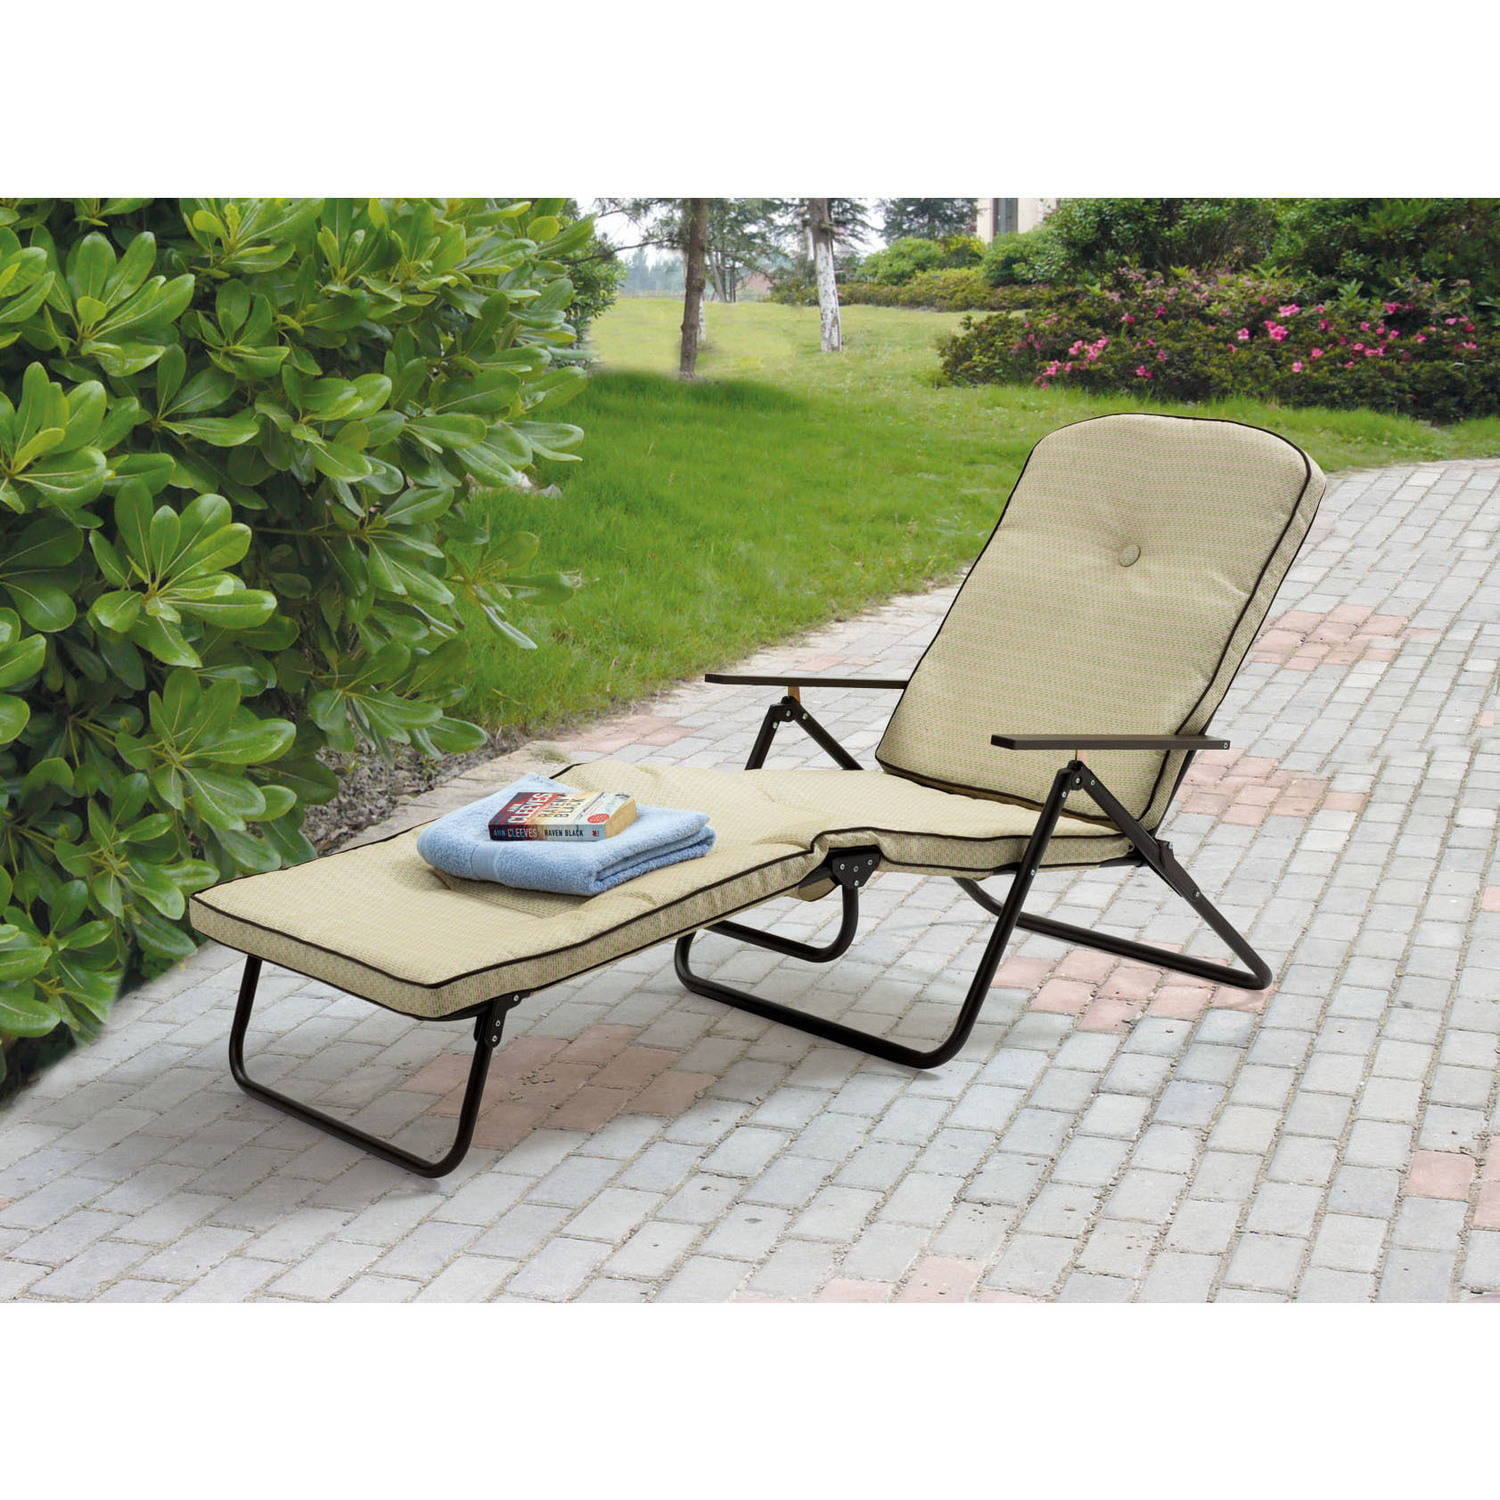 Mainstays Deluxe Orbit Chaise Lounge With Umbrella U0026 Side Table, Seats 2    Walmart.com